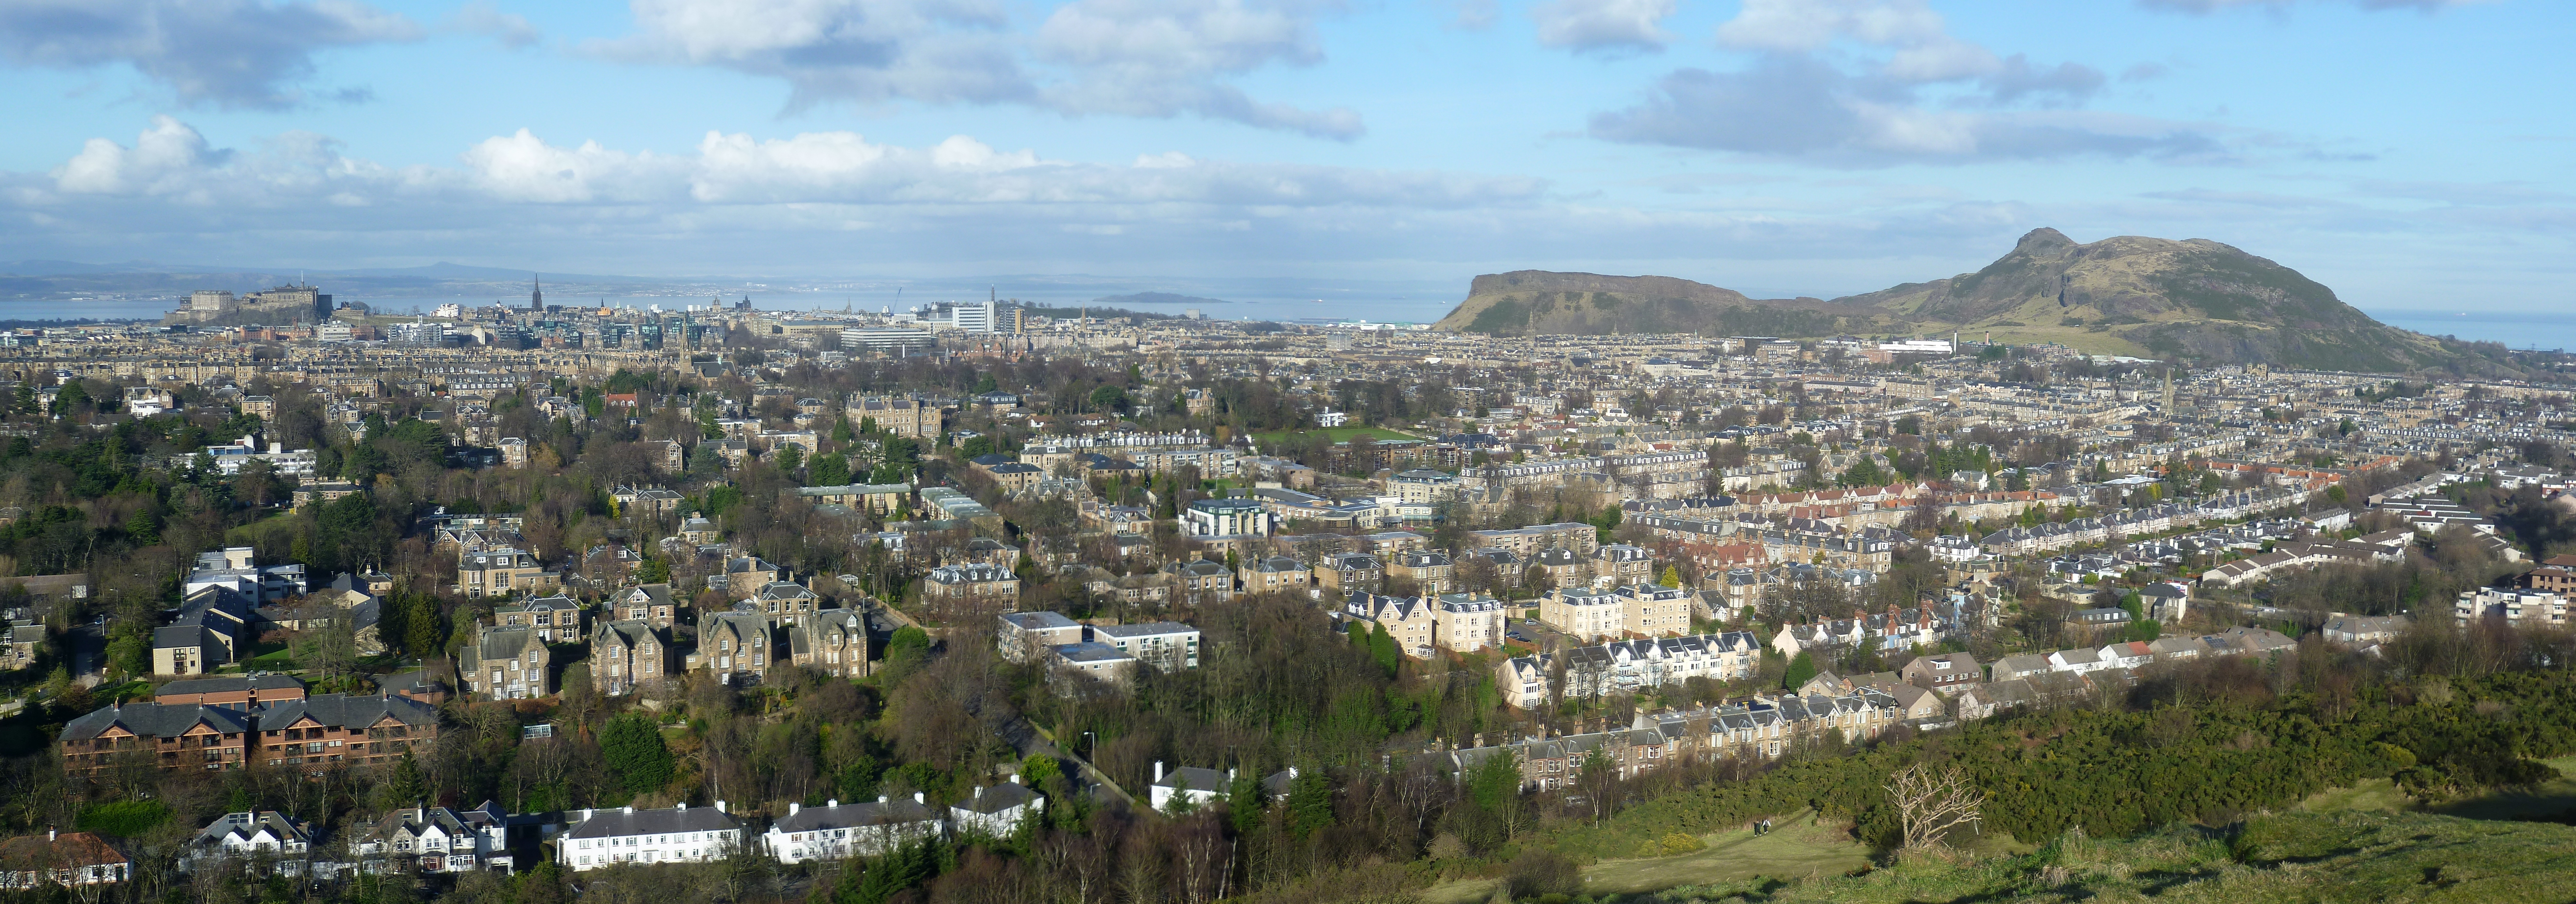 View_of_Edinburgh_from_Blackford_Hill_2.